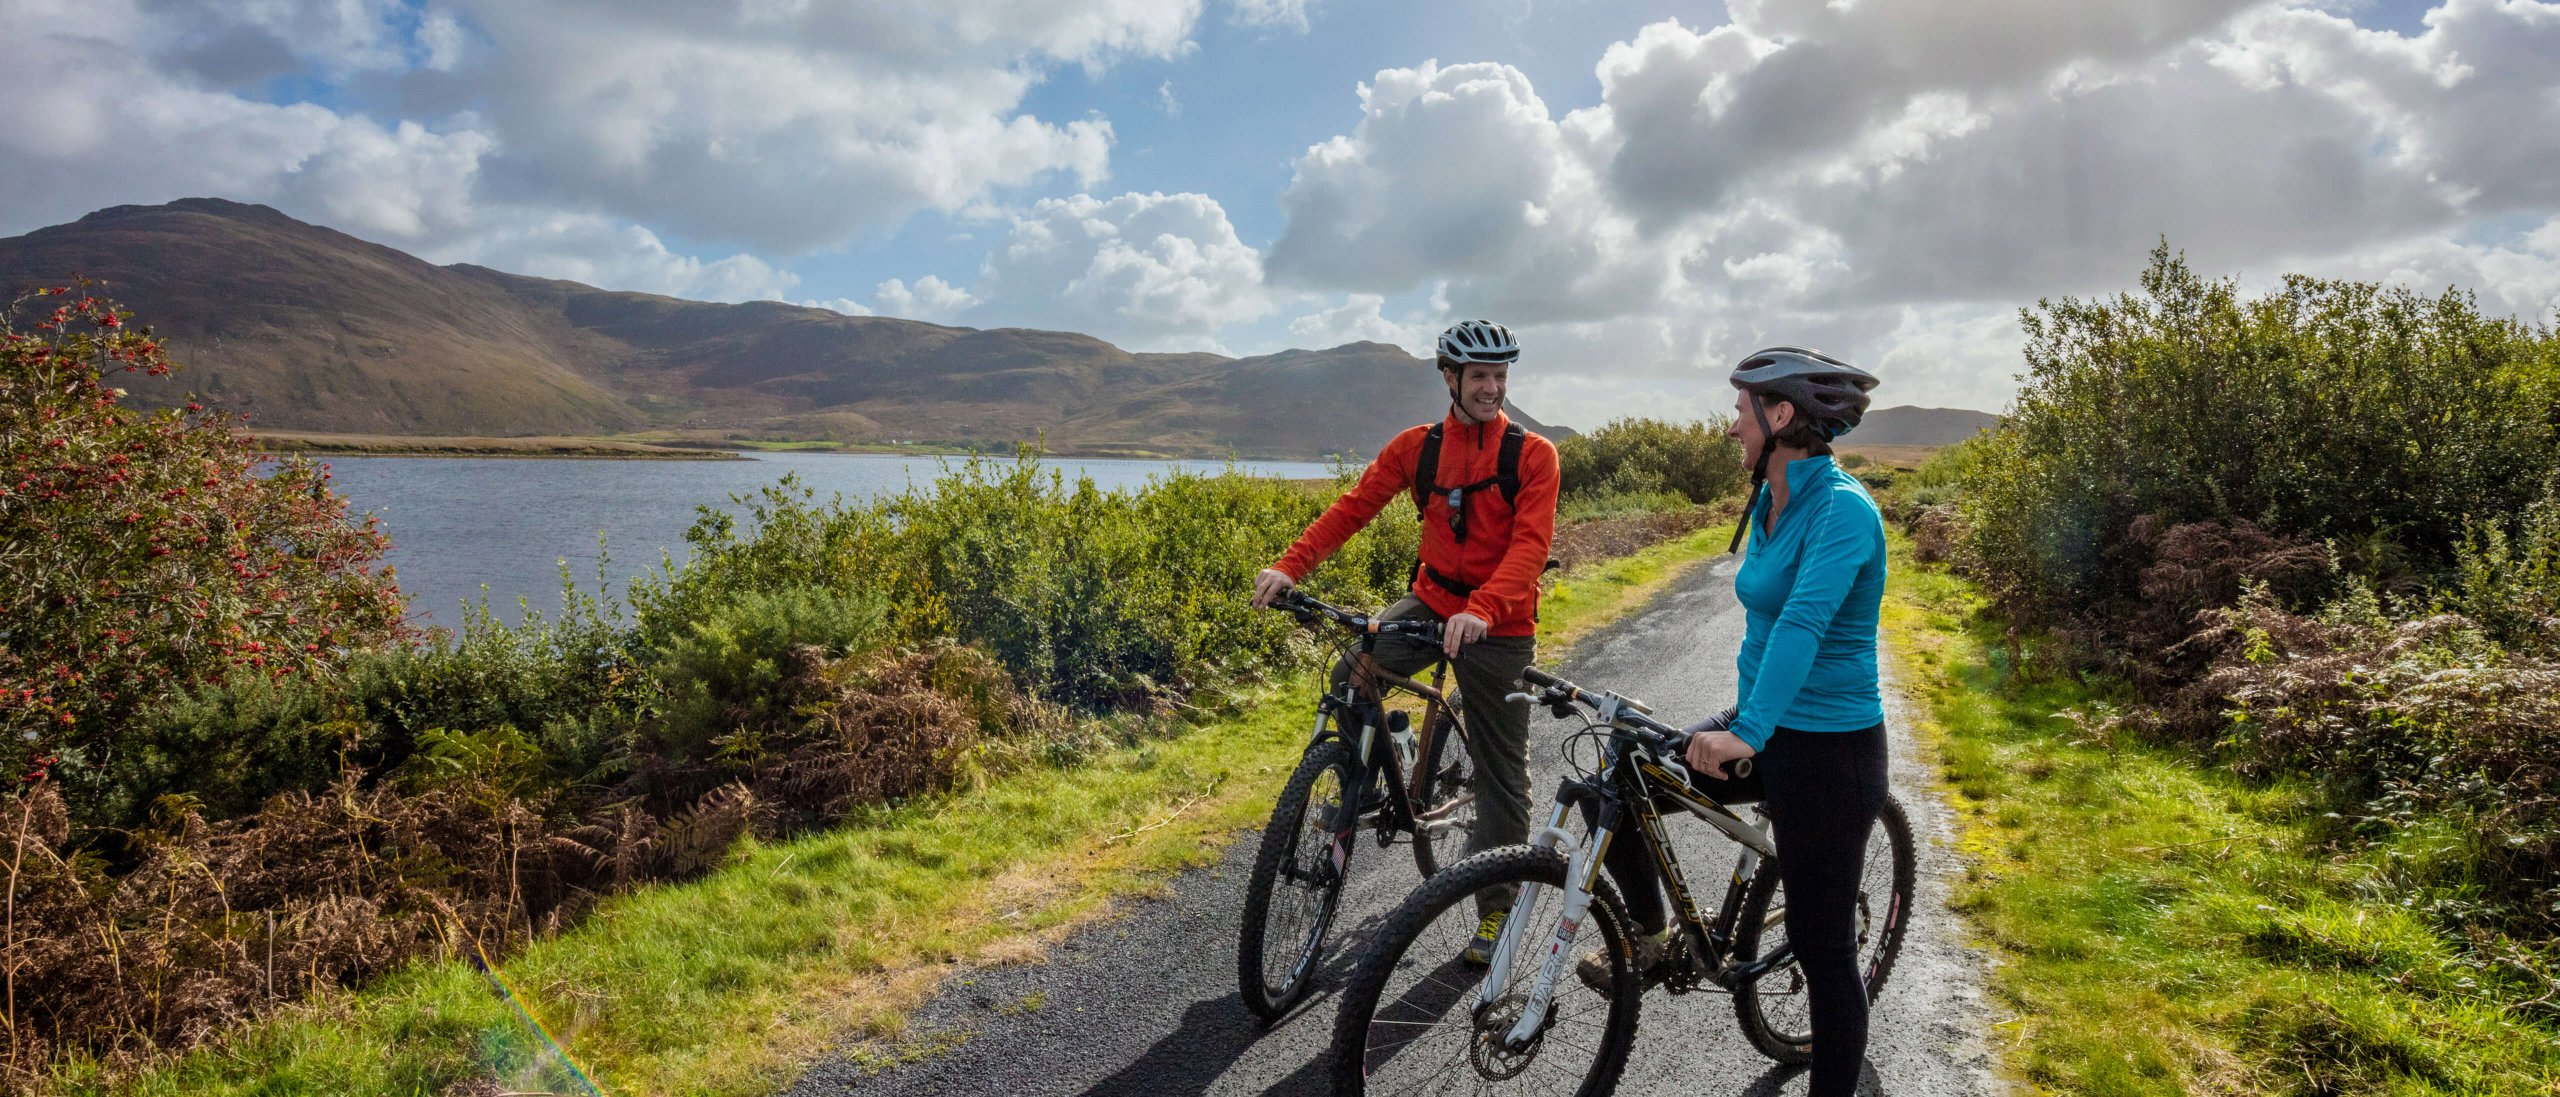 Couple cycling stop with their bikes at scenic spot on Great Western Greenway in Mayo